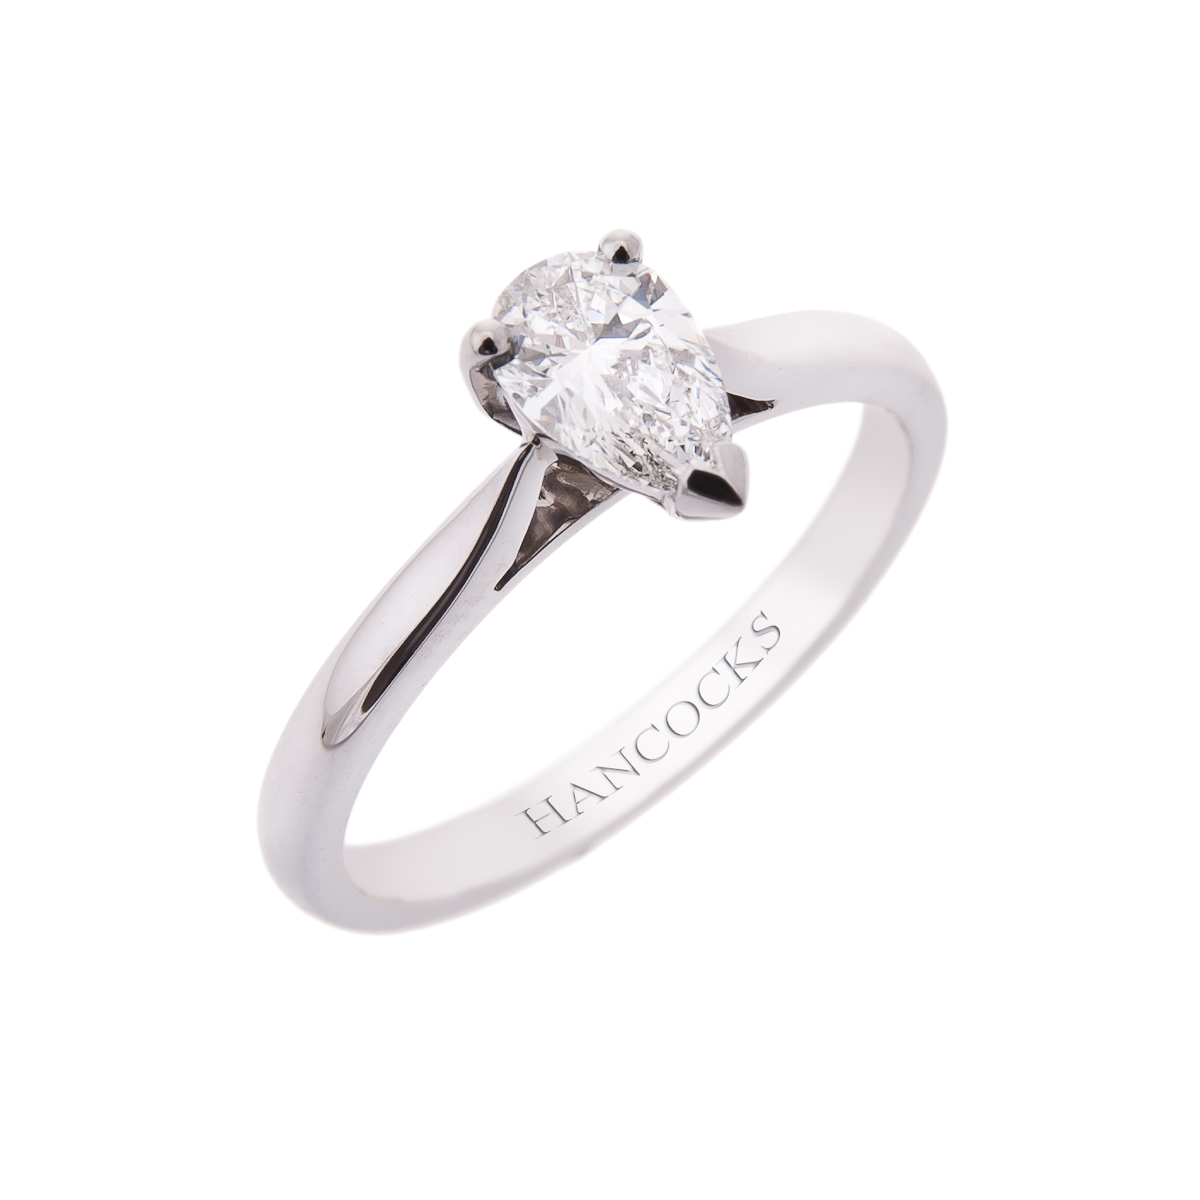 gia-certificated-pear-cut-diamond-single-stone-engagement-ring